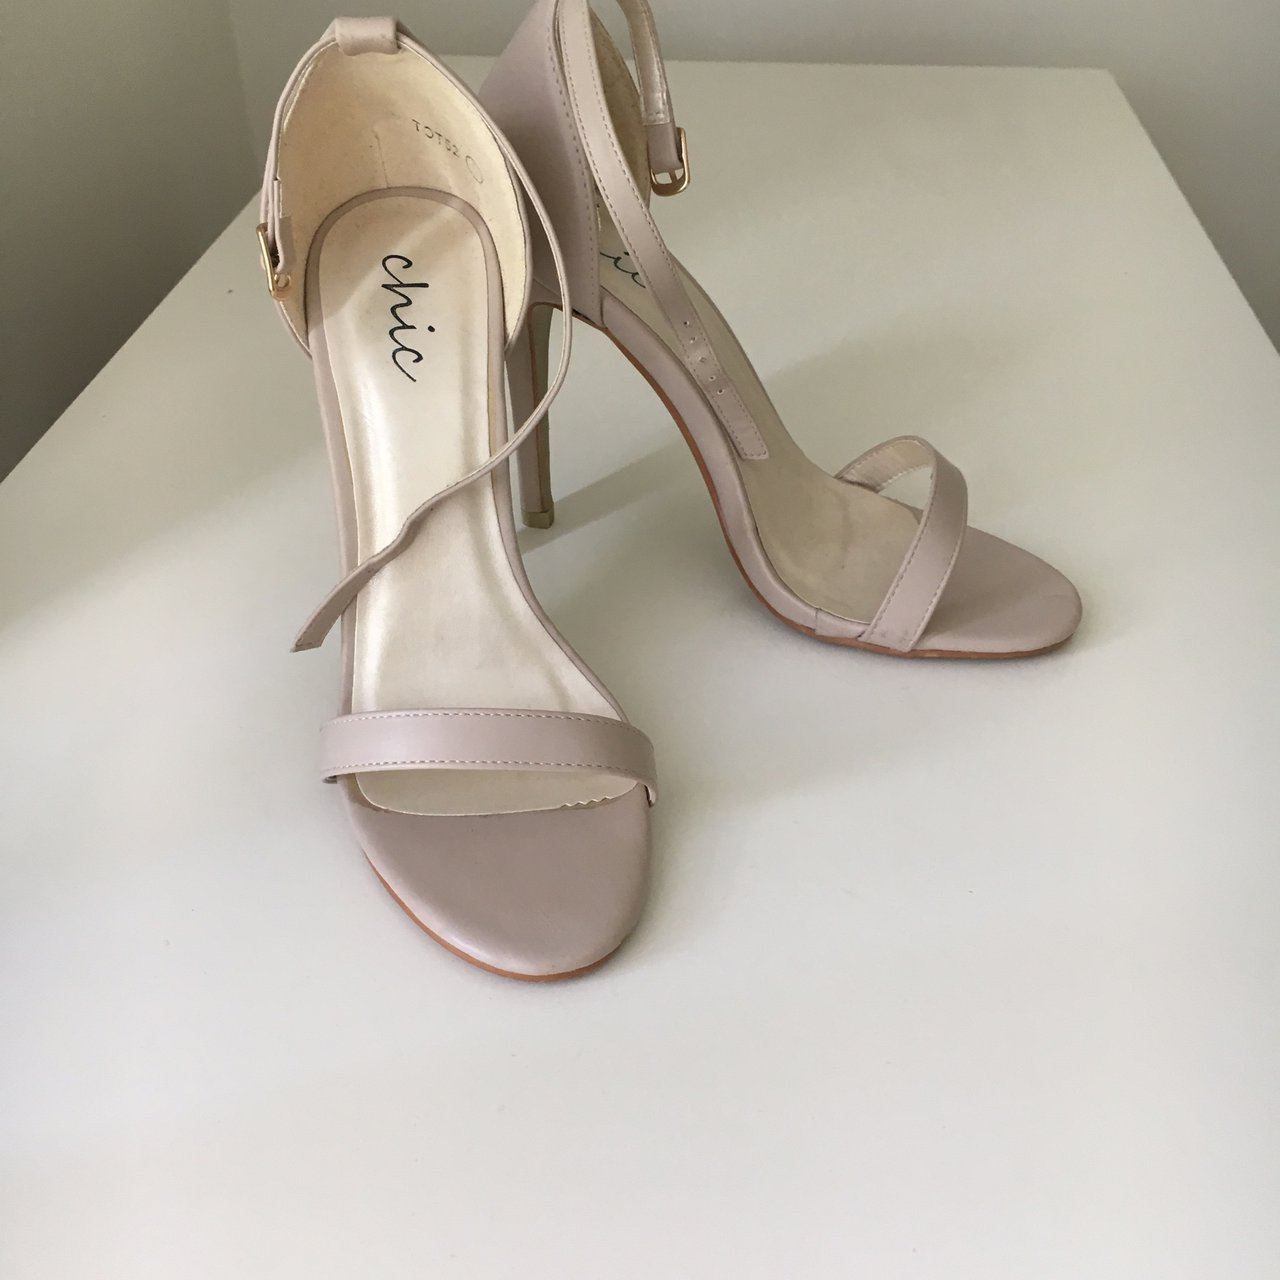 c7a3d86733e0 Nude heels size 5. Have been worn once or twice but in good - Depop